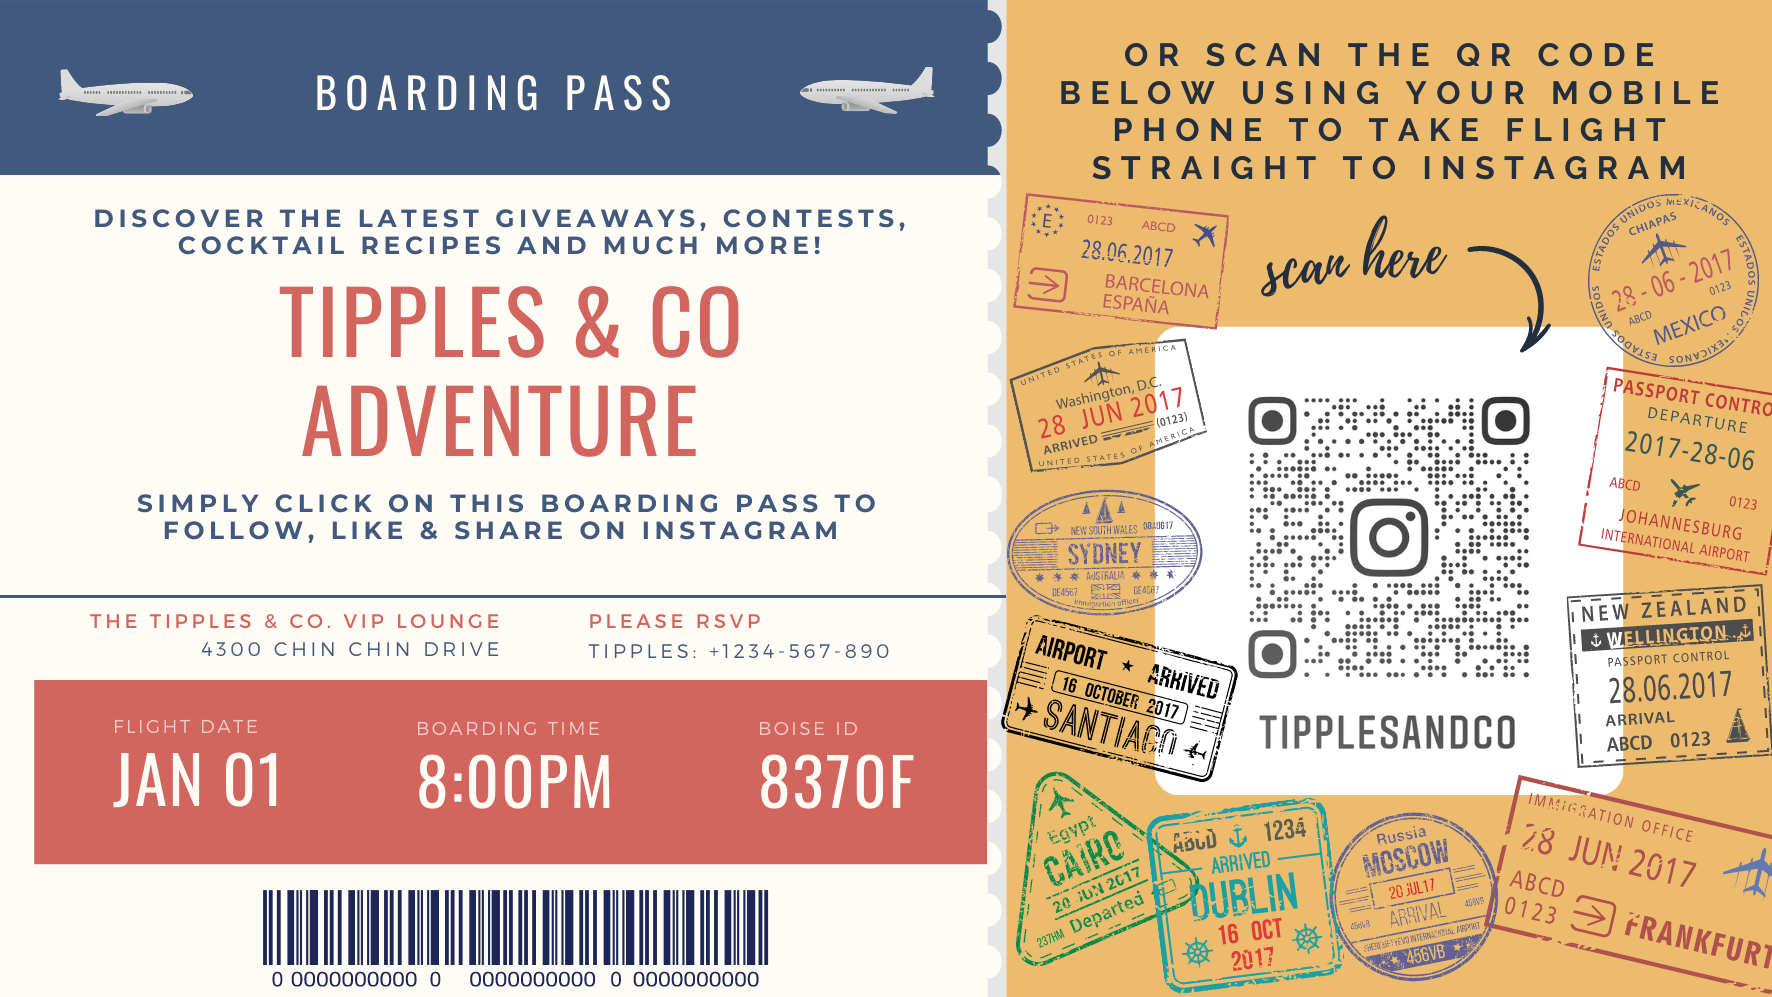 Tipples And Company boarding pass to our Instagram page - Follow, Like and Share to find out our latest giveaways, competitions, cocktail recipes, new drinks launches, new products and services and much more!